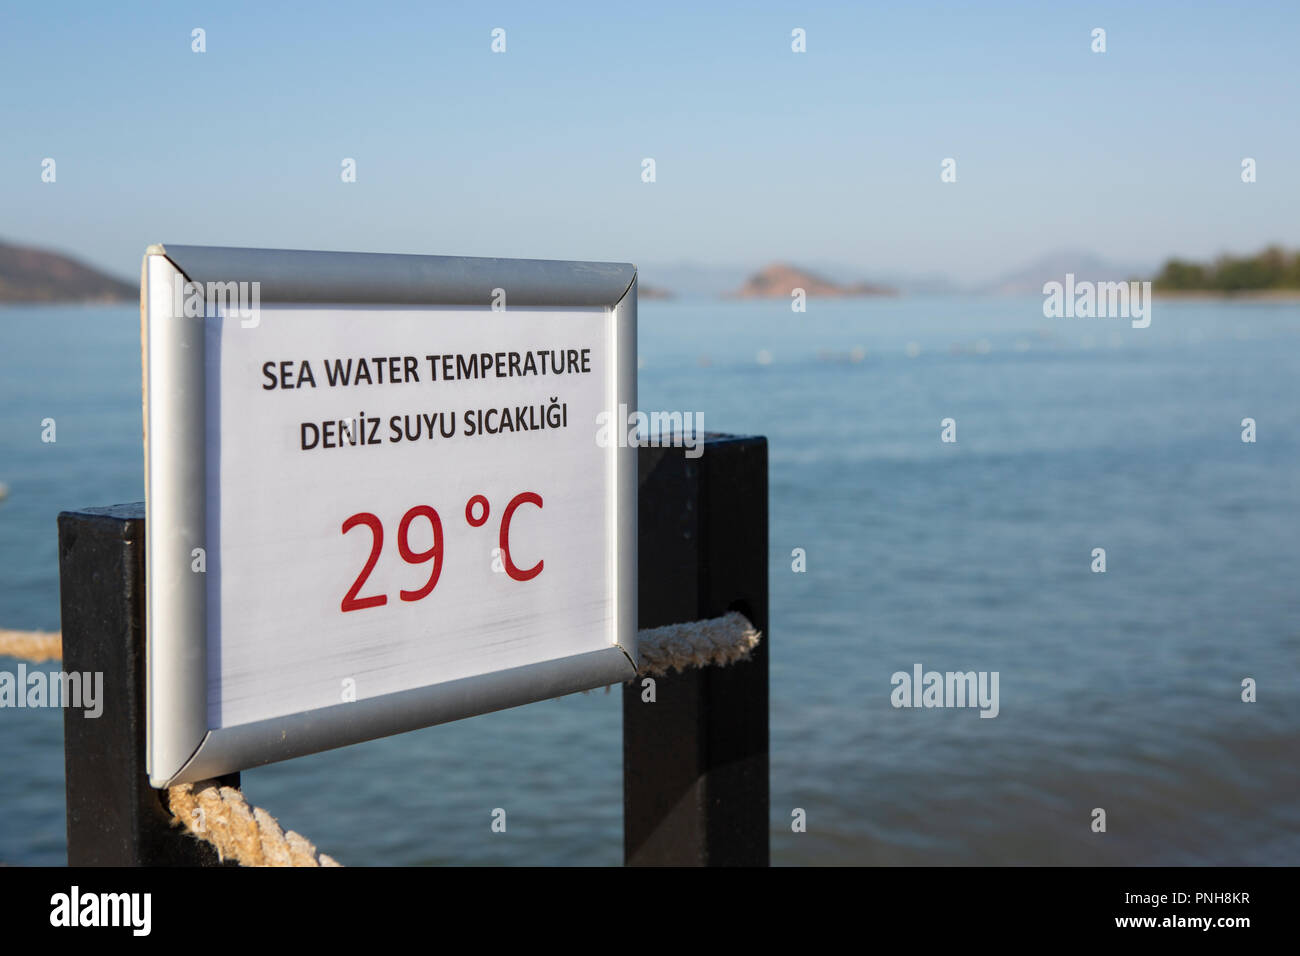 Sign in English and Turkish showing temperature of sea water - Stock Image